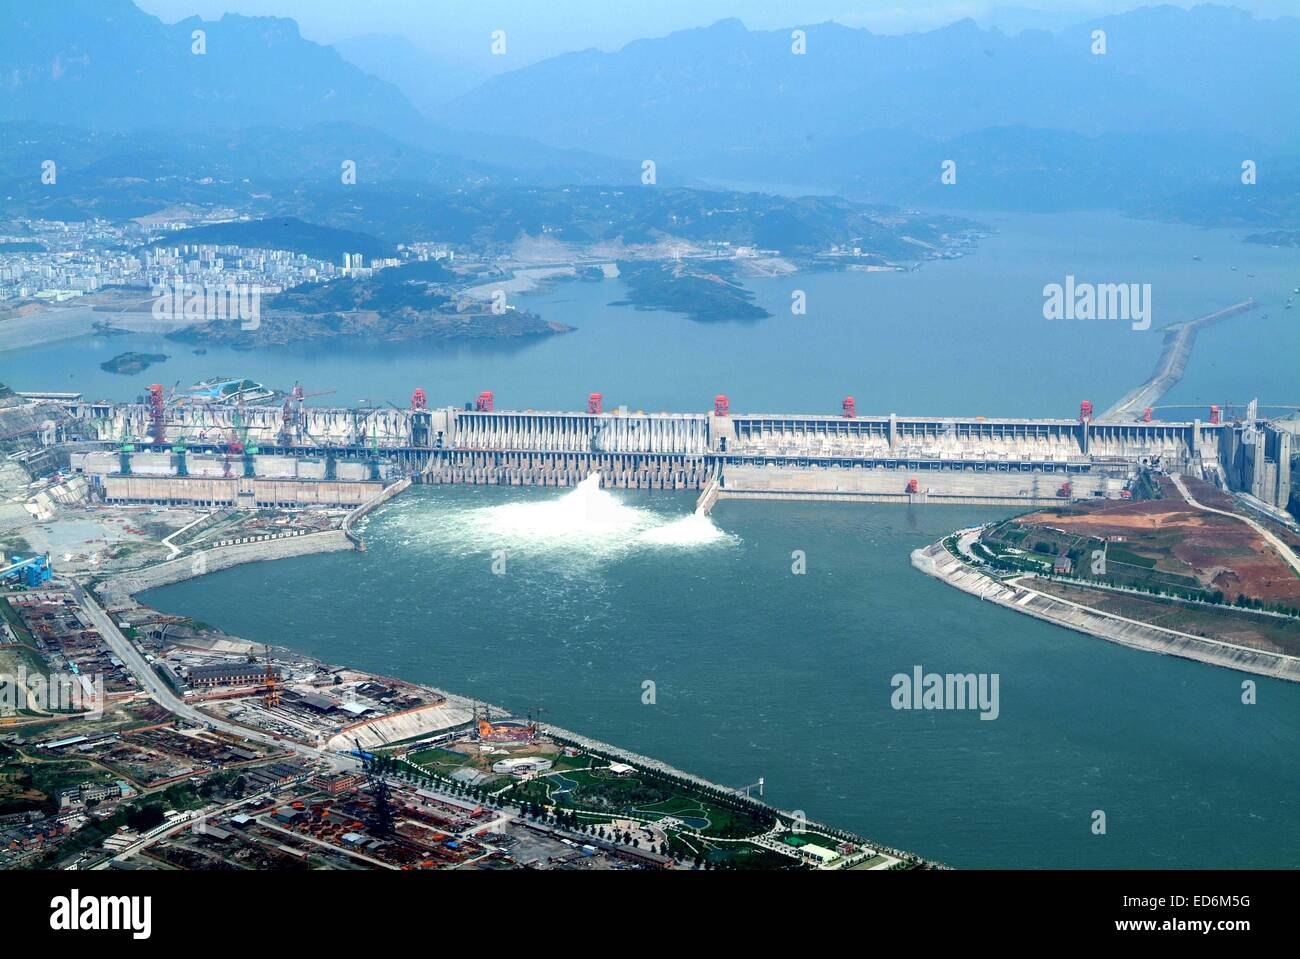 (141230) -- BEIJING, Dec. 30, 2014 (Xinhua) -- File photo taken on May 14, 2006 shows the Three Gorges Dam, a gigantic - Stock Image